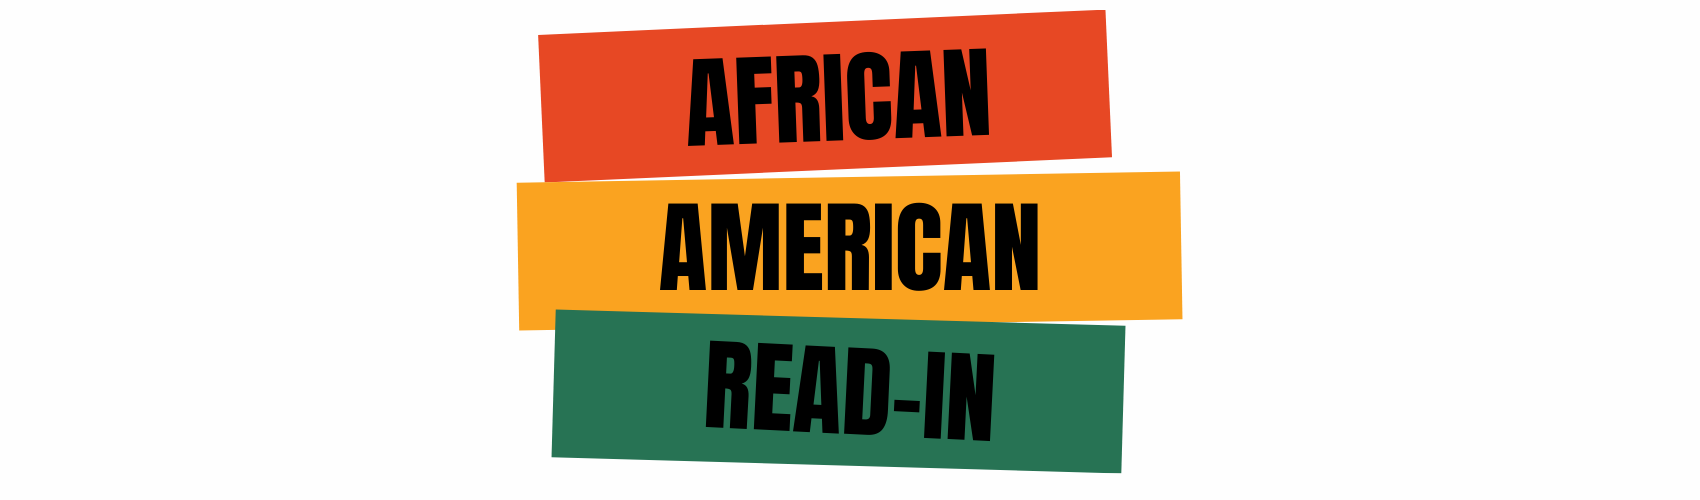 February 11 - African American Read-In